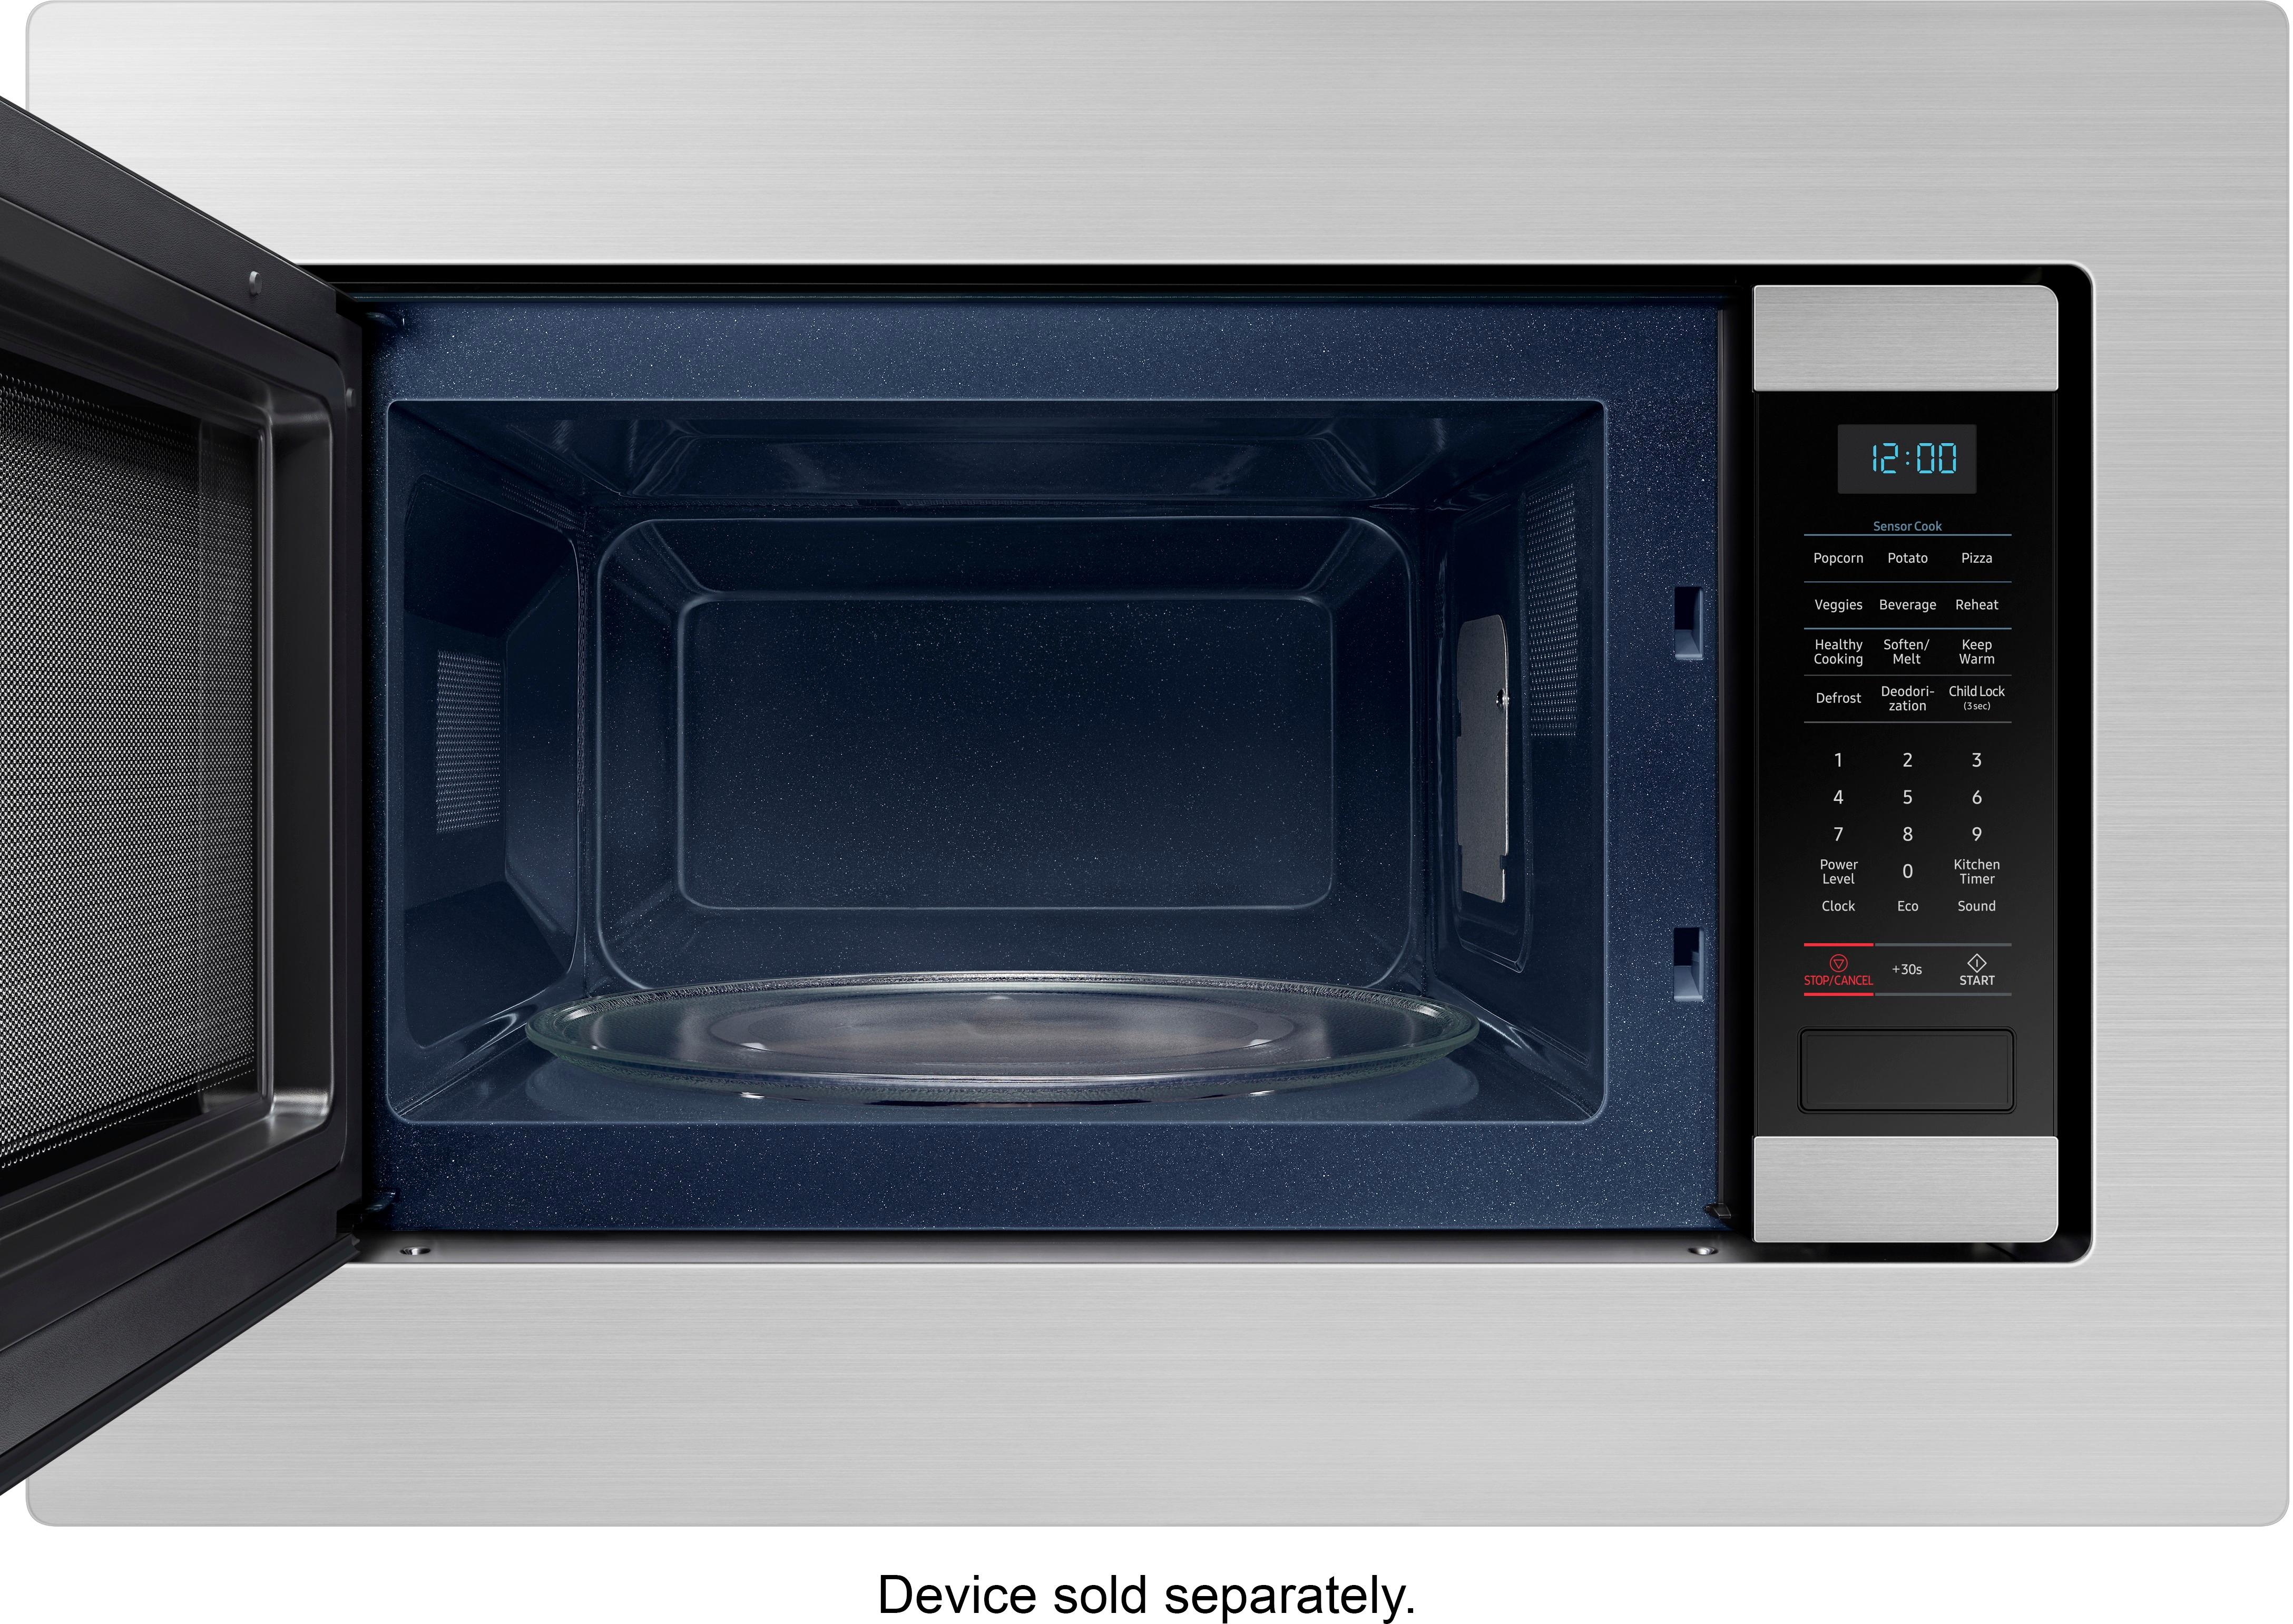 30 trim kit for samsung ms19m8000as microwave stainless steel